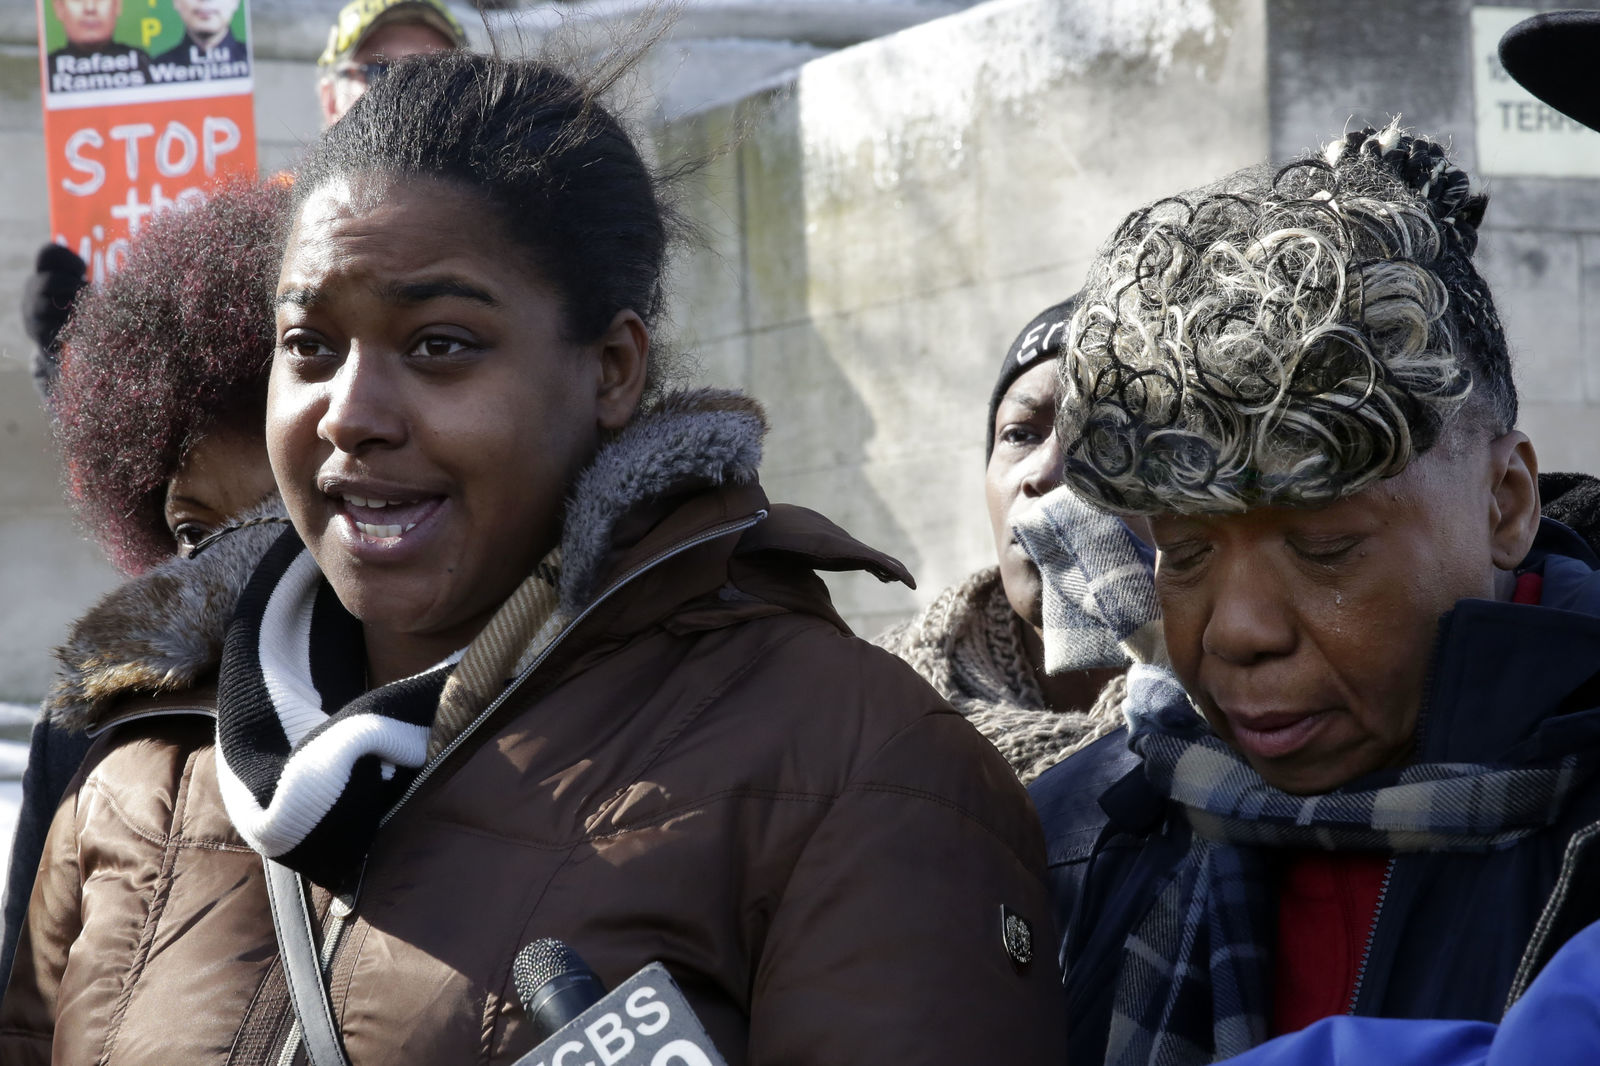 Erica Garner, left, daughter of chokehold death victim Eric Garner, and his mother Gwen Carr, talk to the press after attending a court hearing, in the Staten Island borough of New York, Thursday, Feb. 5, 2015. (AP Photo/Richard Drew)